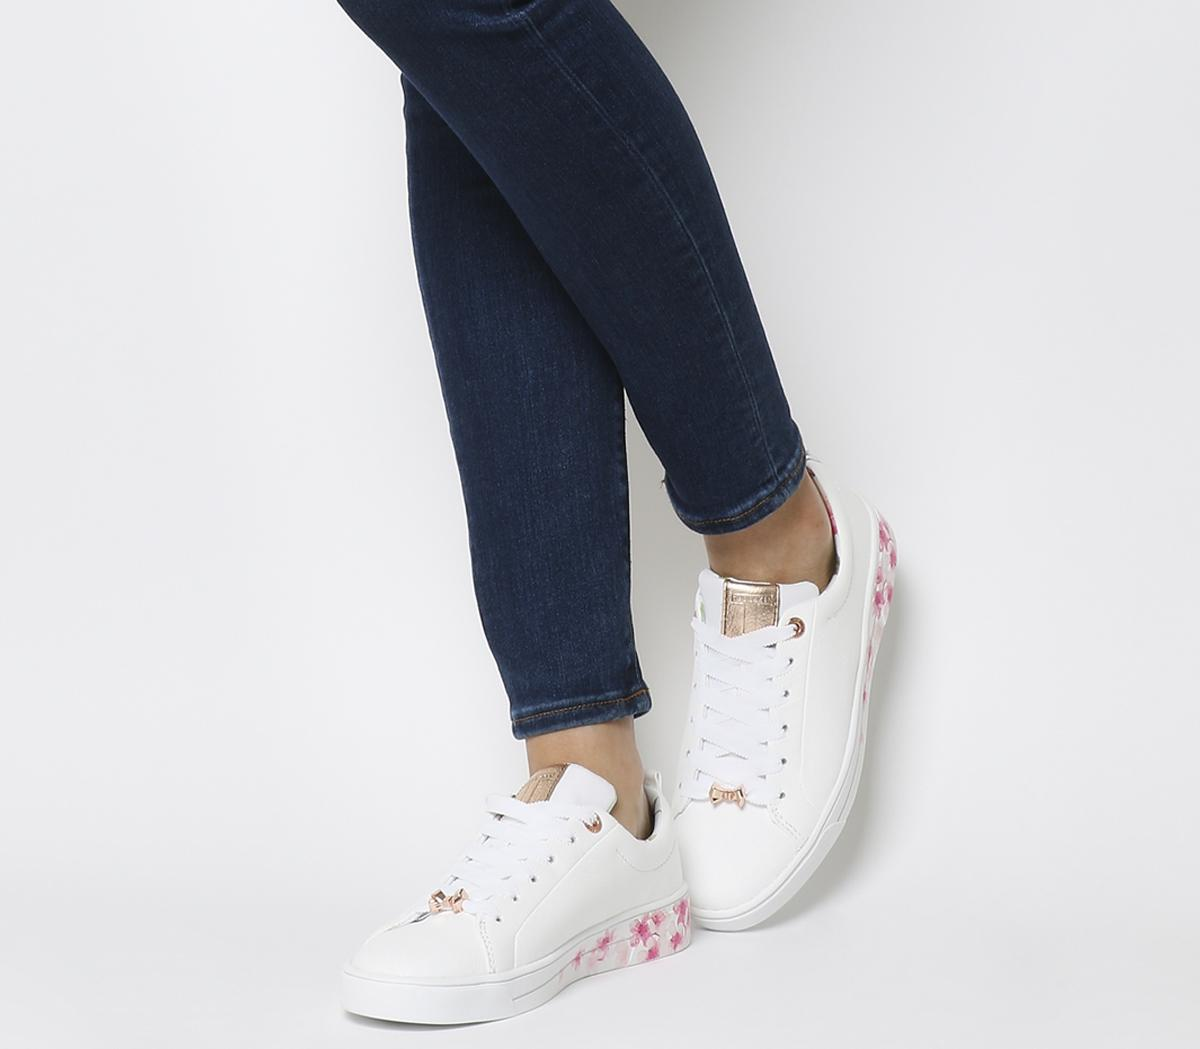 skate shoes fashion 100% authentic Ted Baker Kelleip Sneakers White Leather - Hers trainers